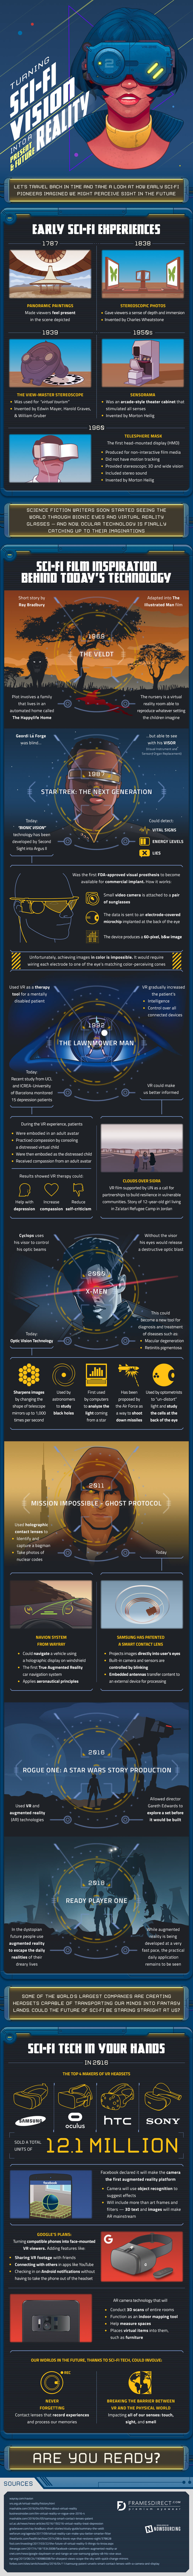 The Future Of SciFi Vision [Infographic] 3